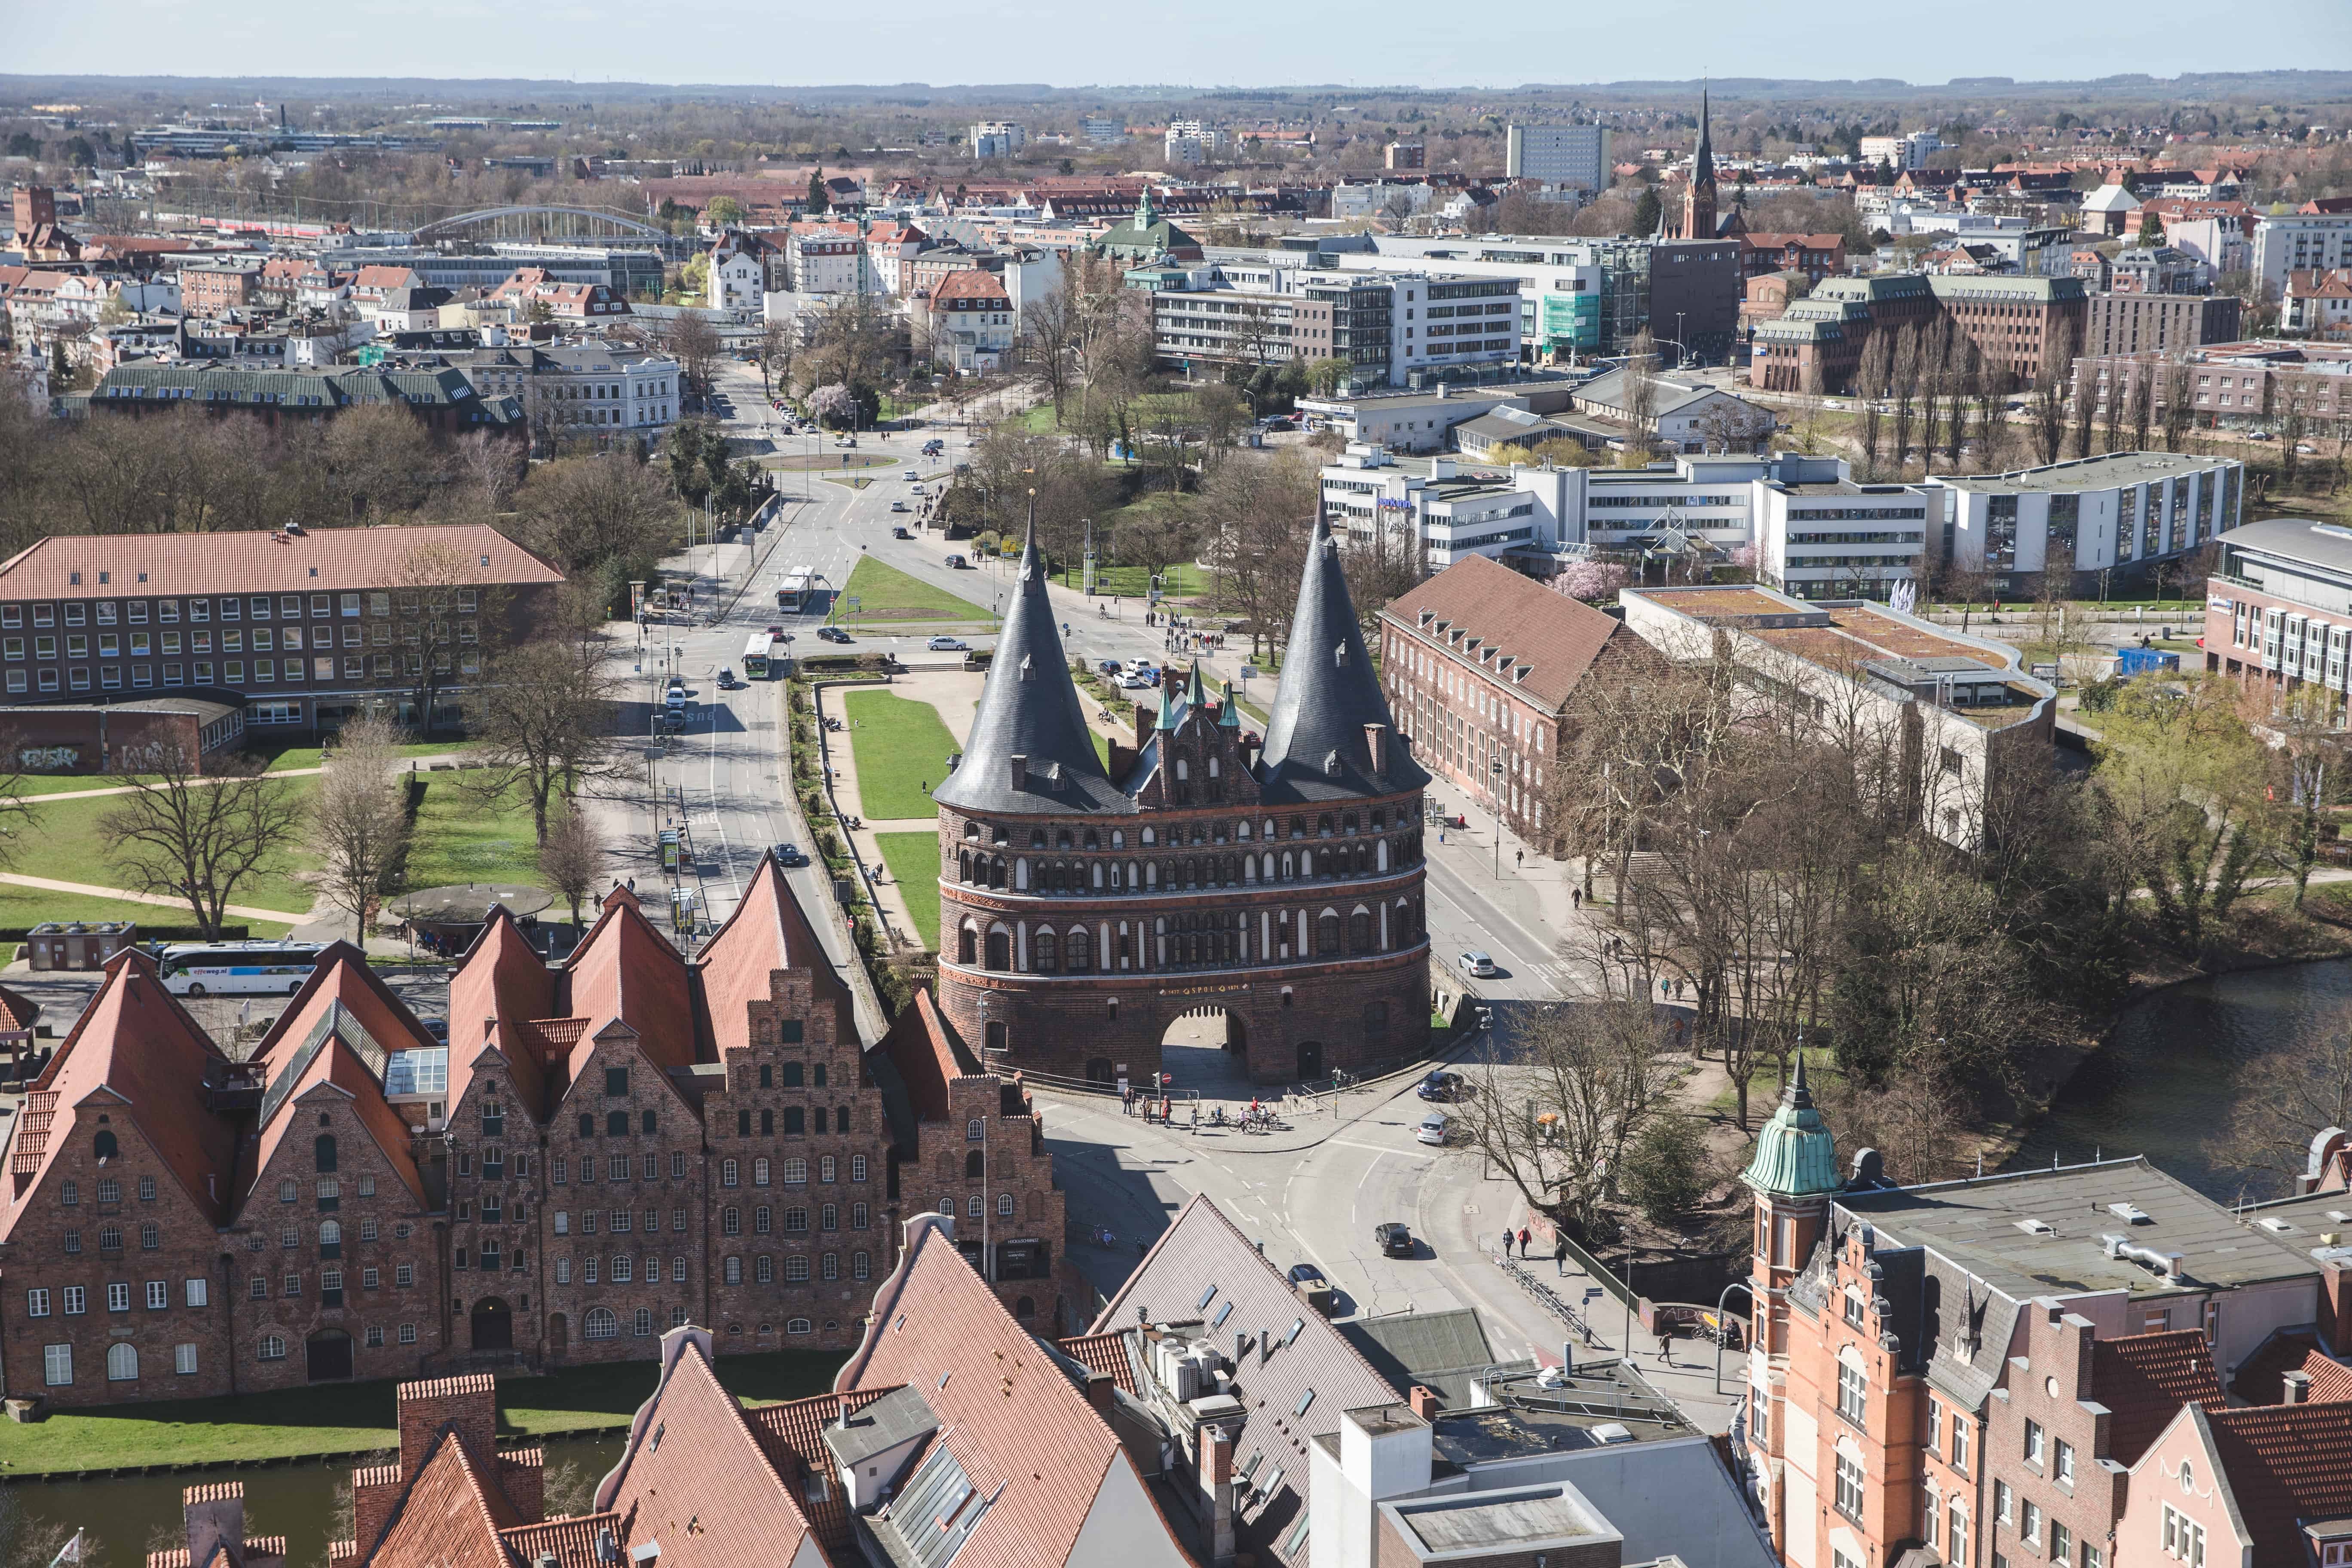 The Lübeck city gate in Germany